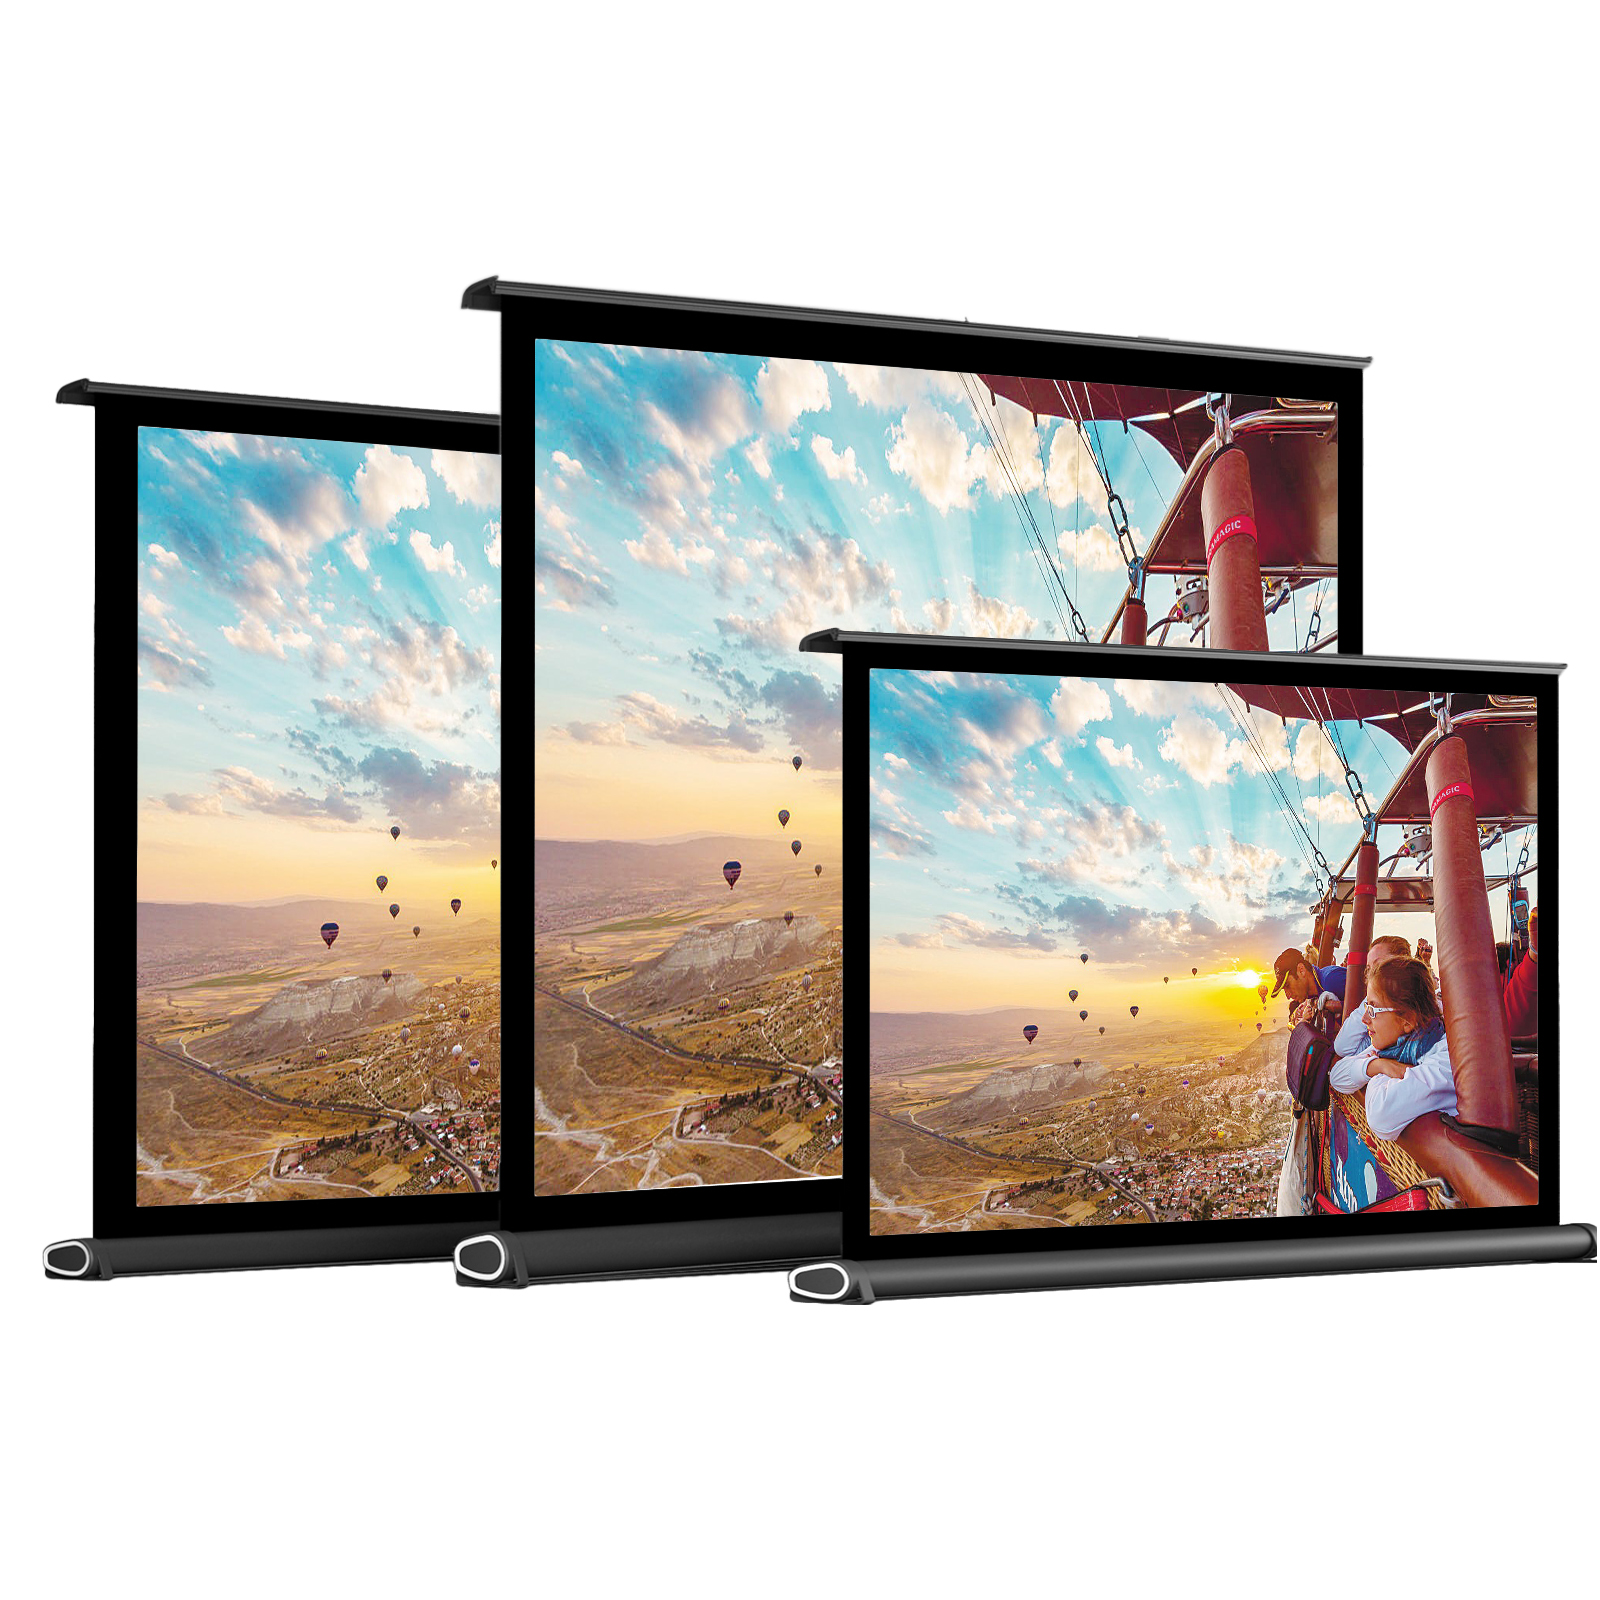 Projector-Screen Portable 50inch Theater Home for 40in 16:9